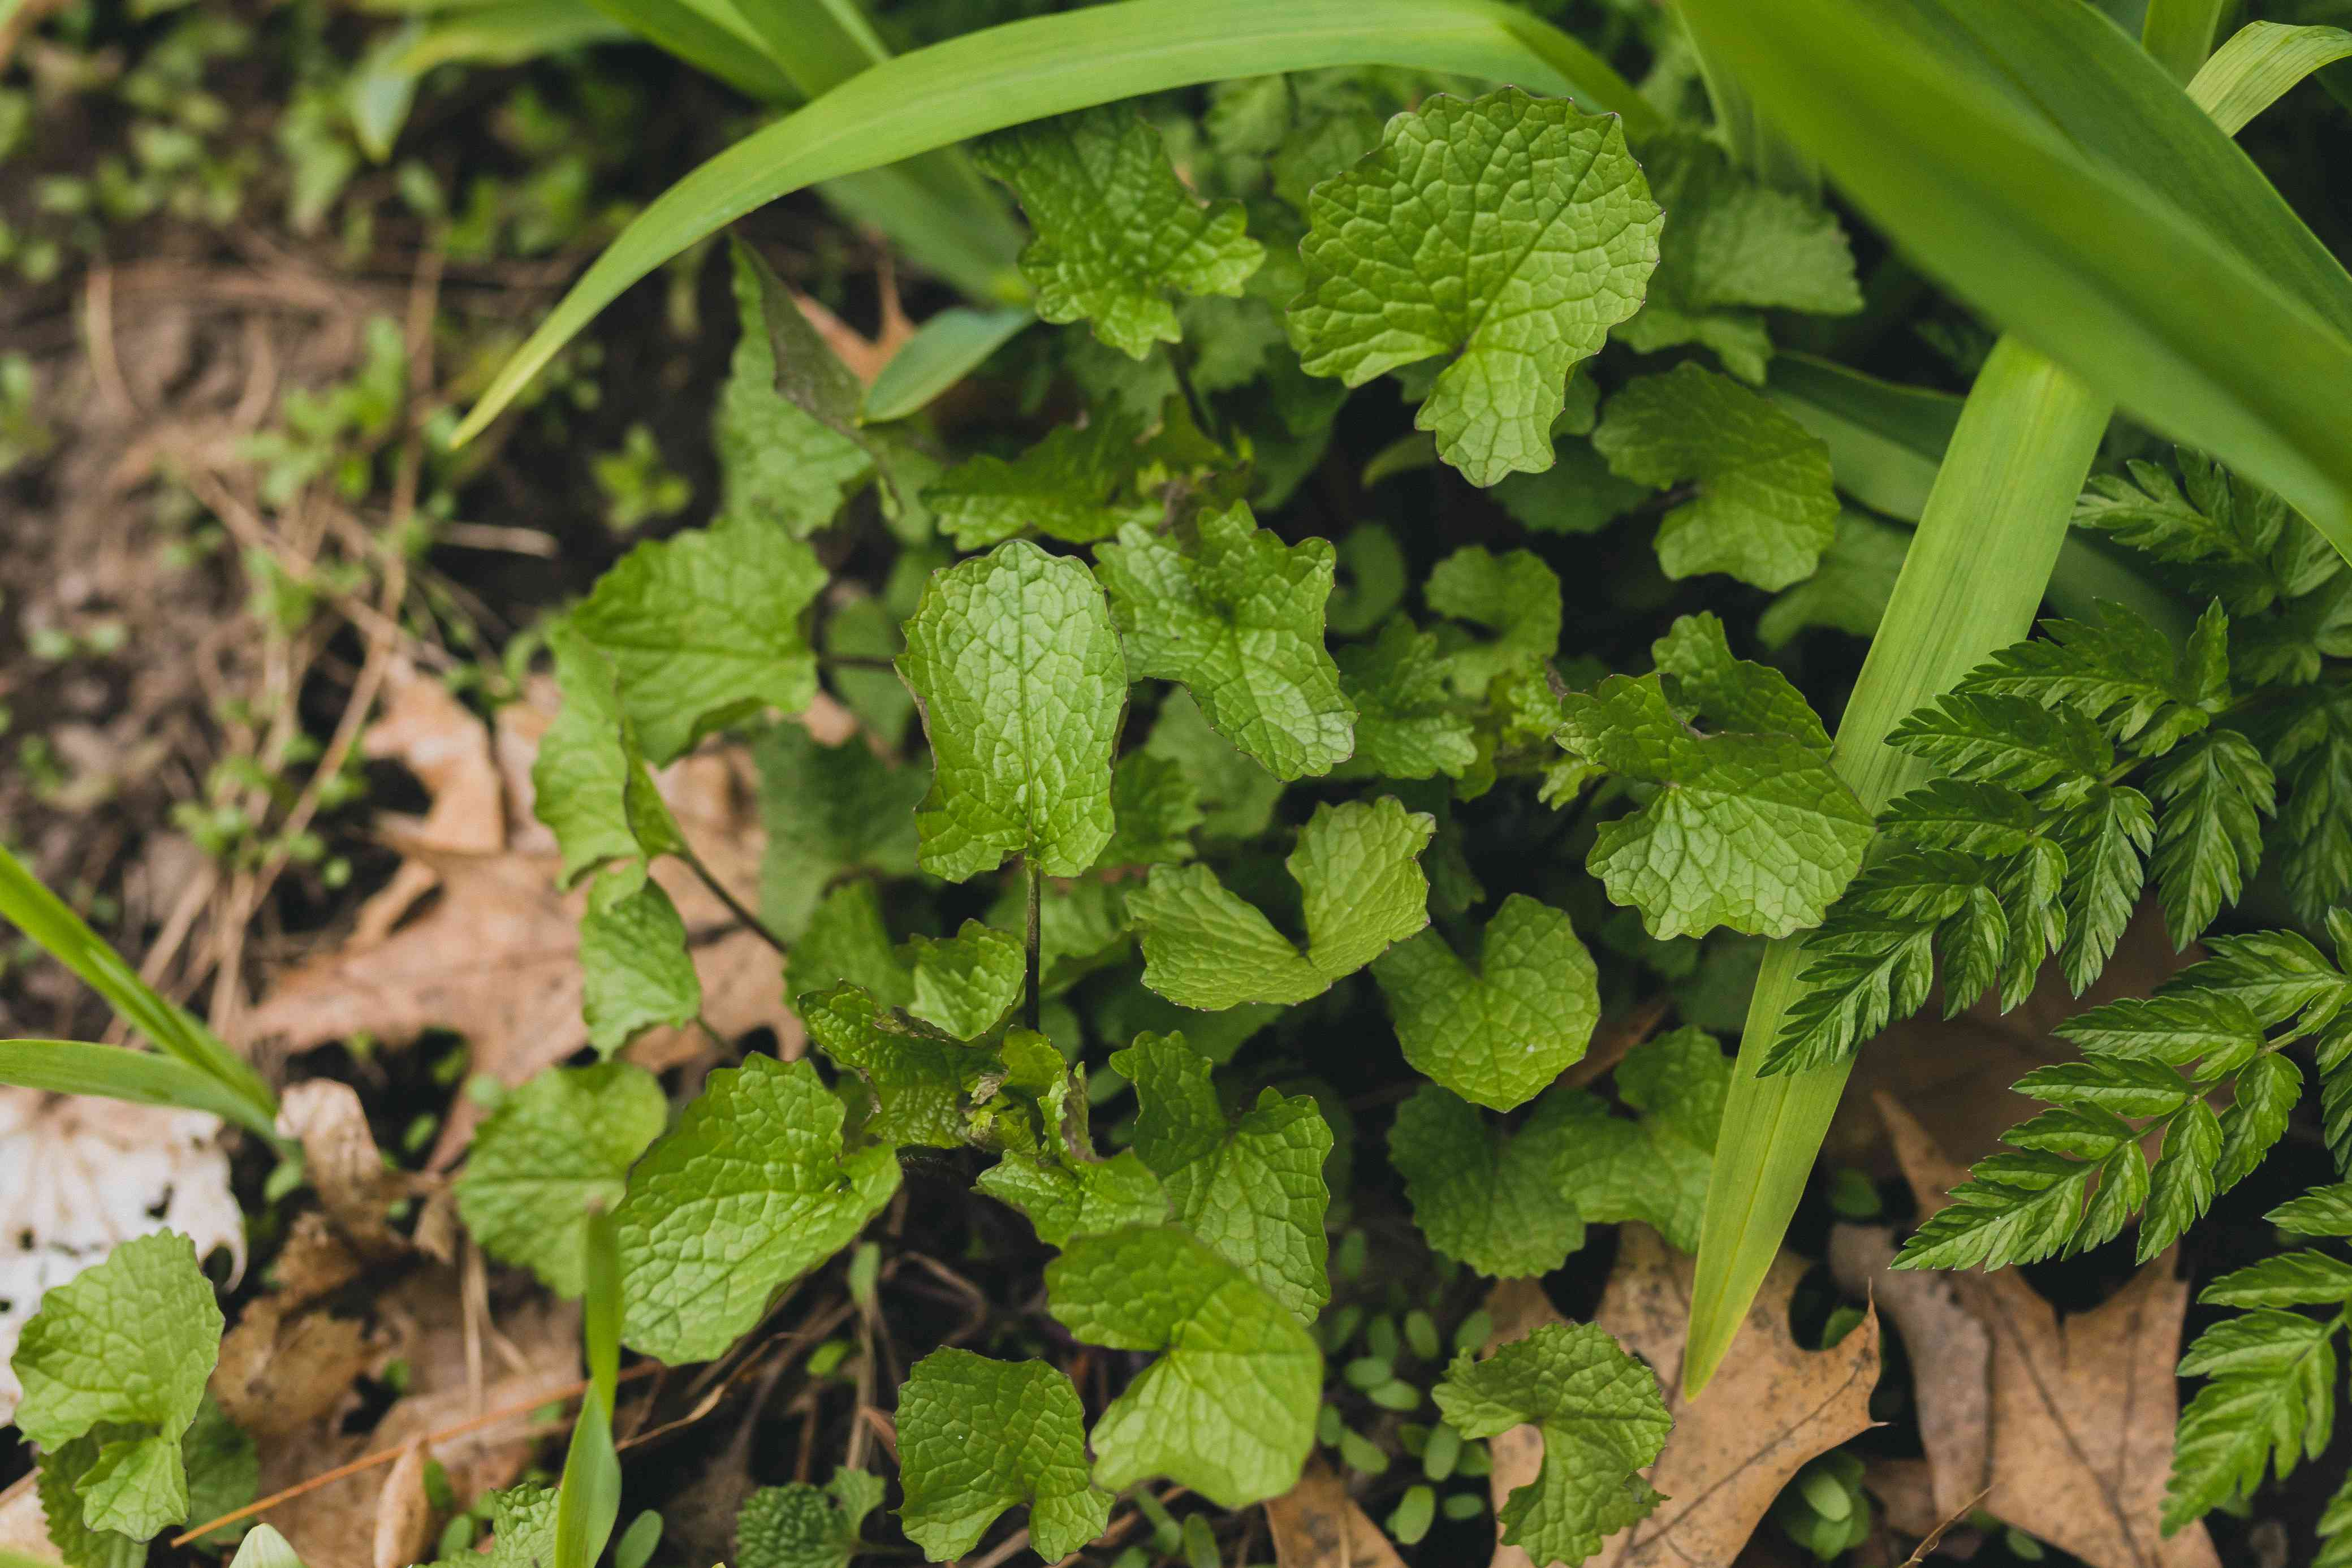 Garlic mustard plant with kidney-shaped leaves with scalloped edges closeup